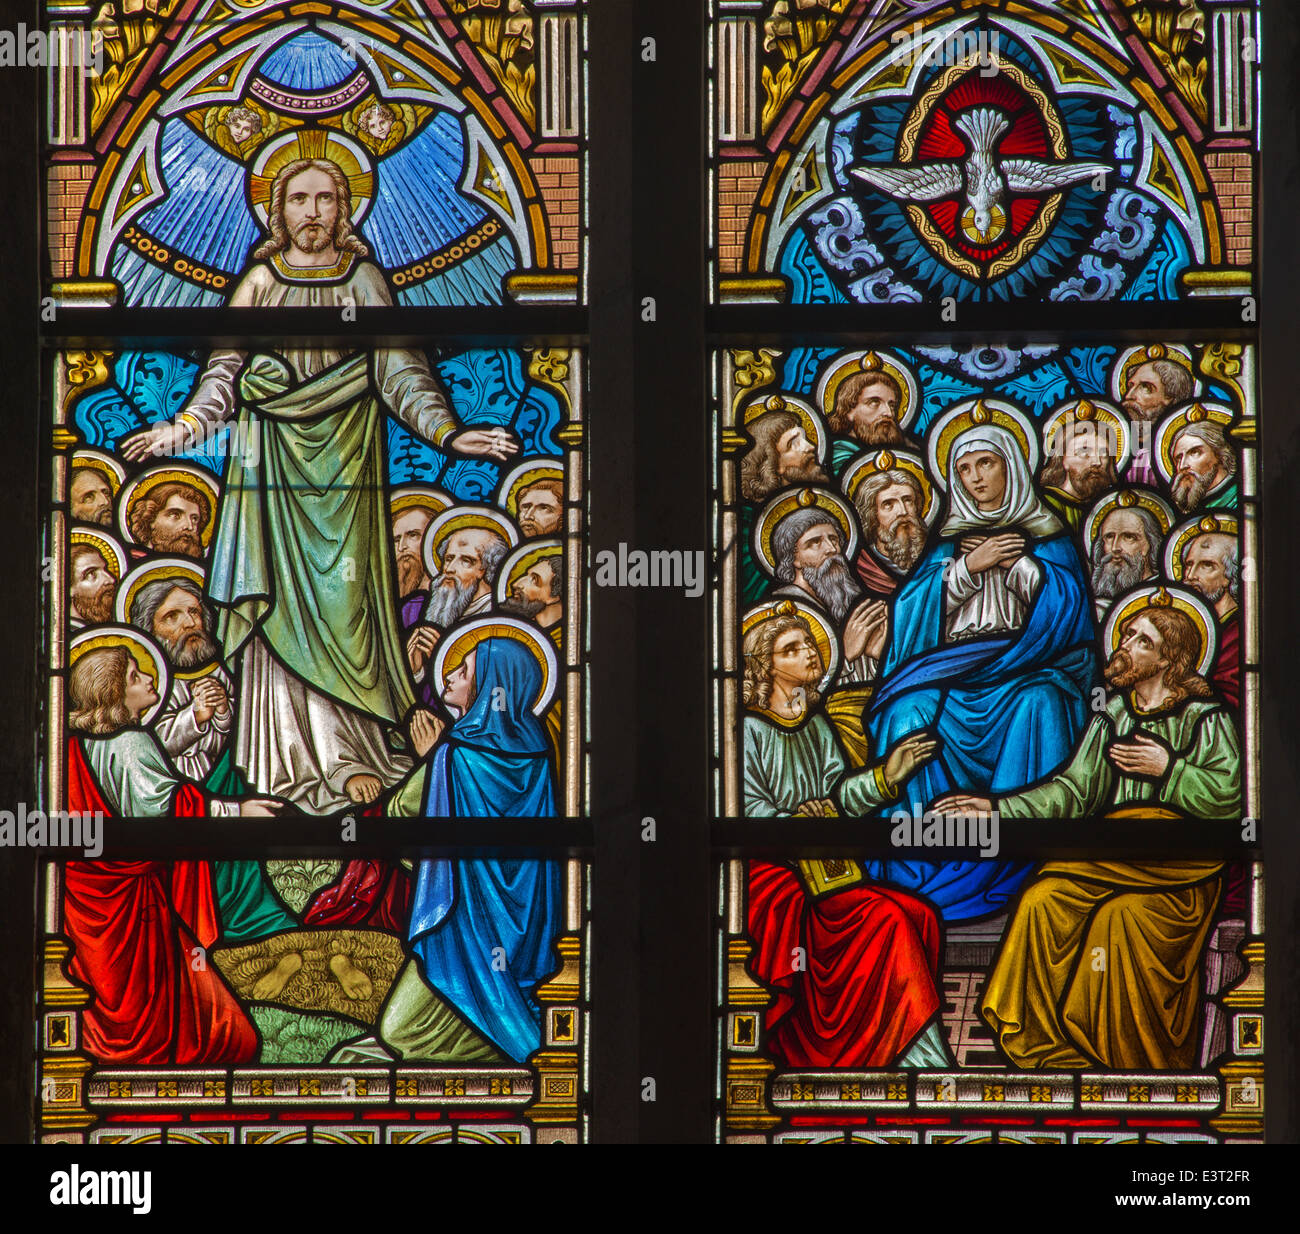 BRUGGE, BELGIUM - JUNE 12, 2014: The Ascension of Jesus and Pentecost scene on the windwopane in st. Jacobs church - Stock Image